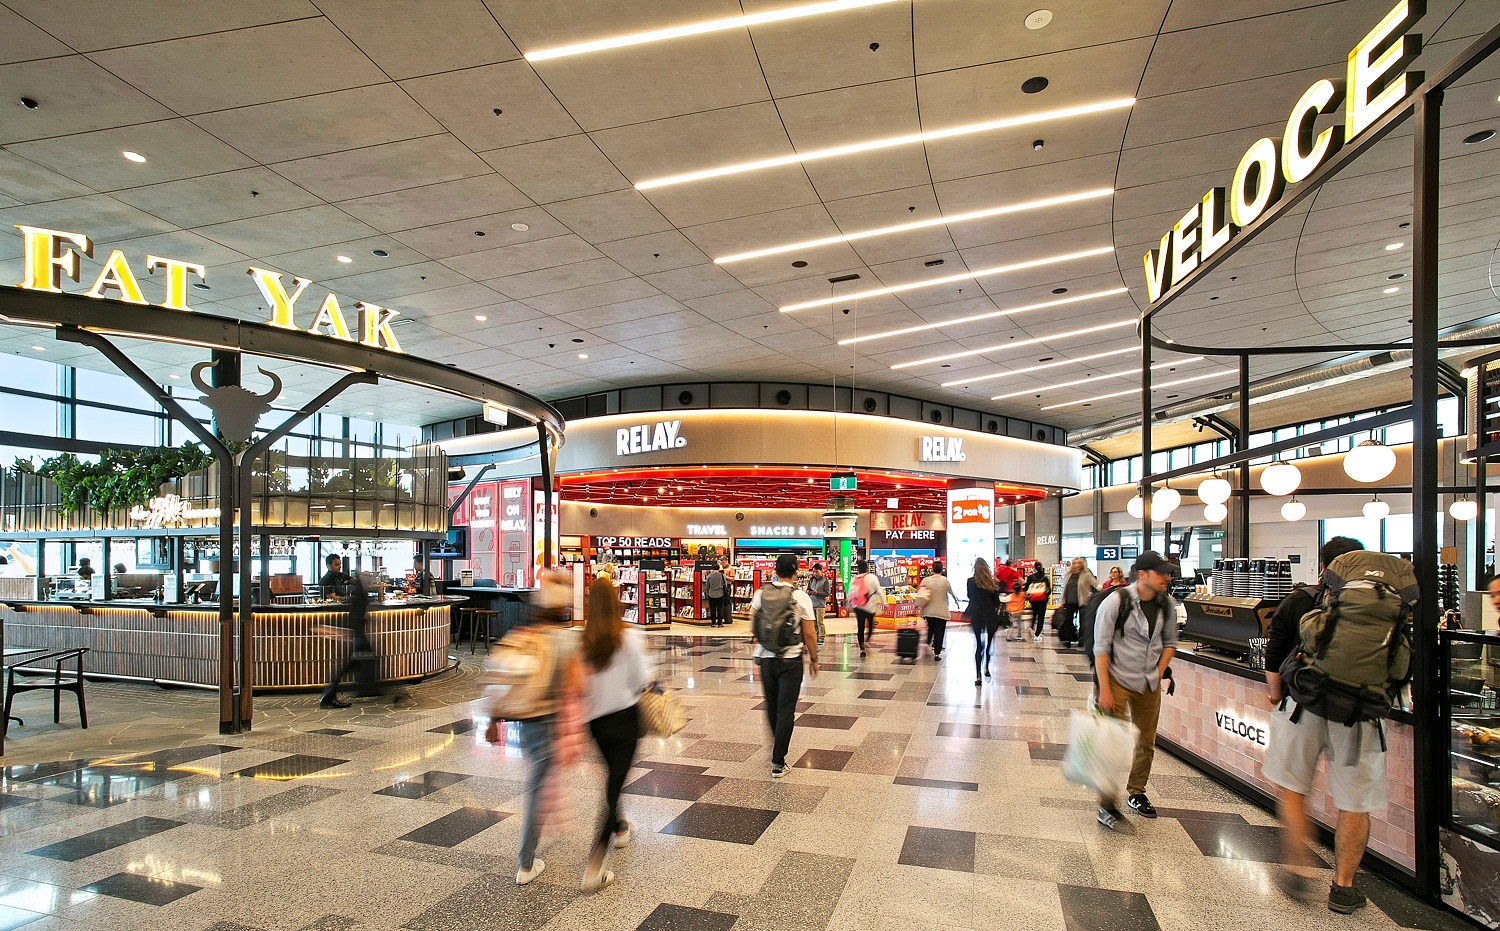 Sydney Airport Shops Sydney Airport Opens Refreshed Lifestyle Precinct In T2 Domestic